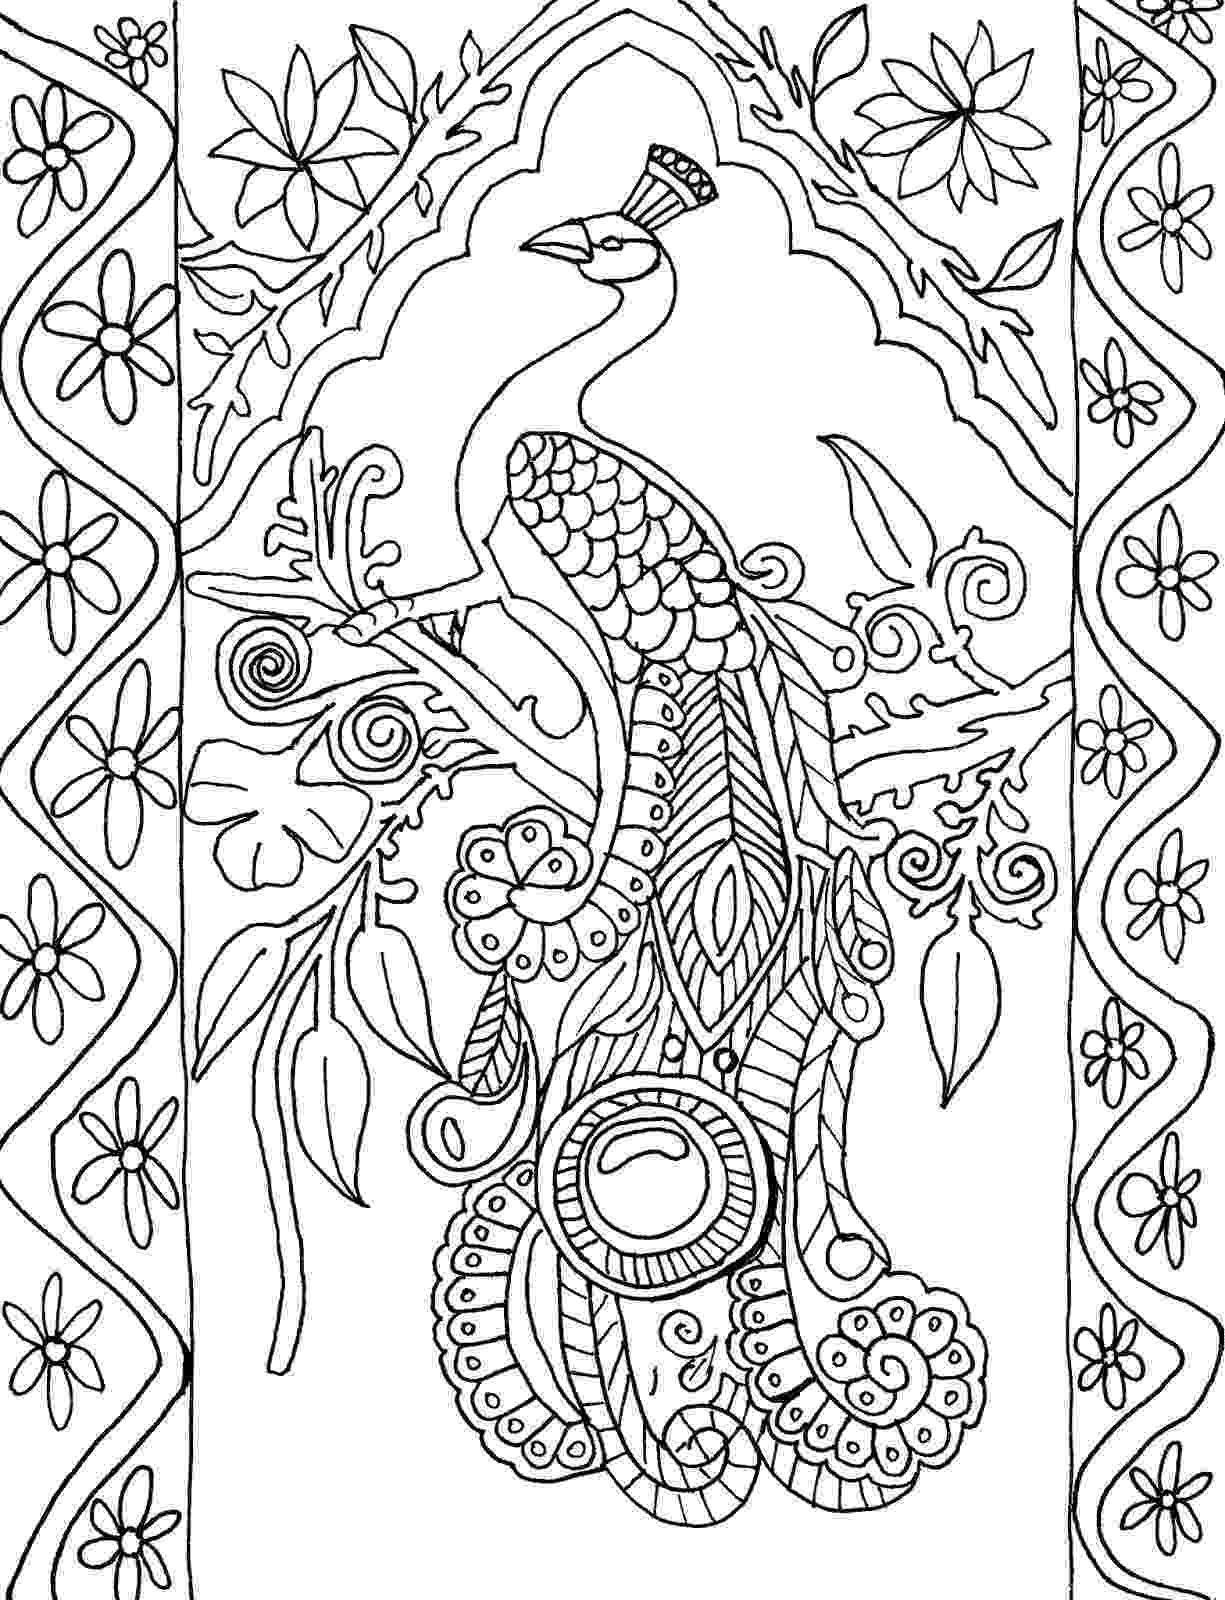 coloring pages print ever after high coloring pages to download and print for free print coloring pages